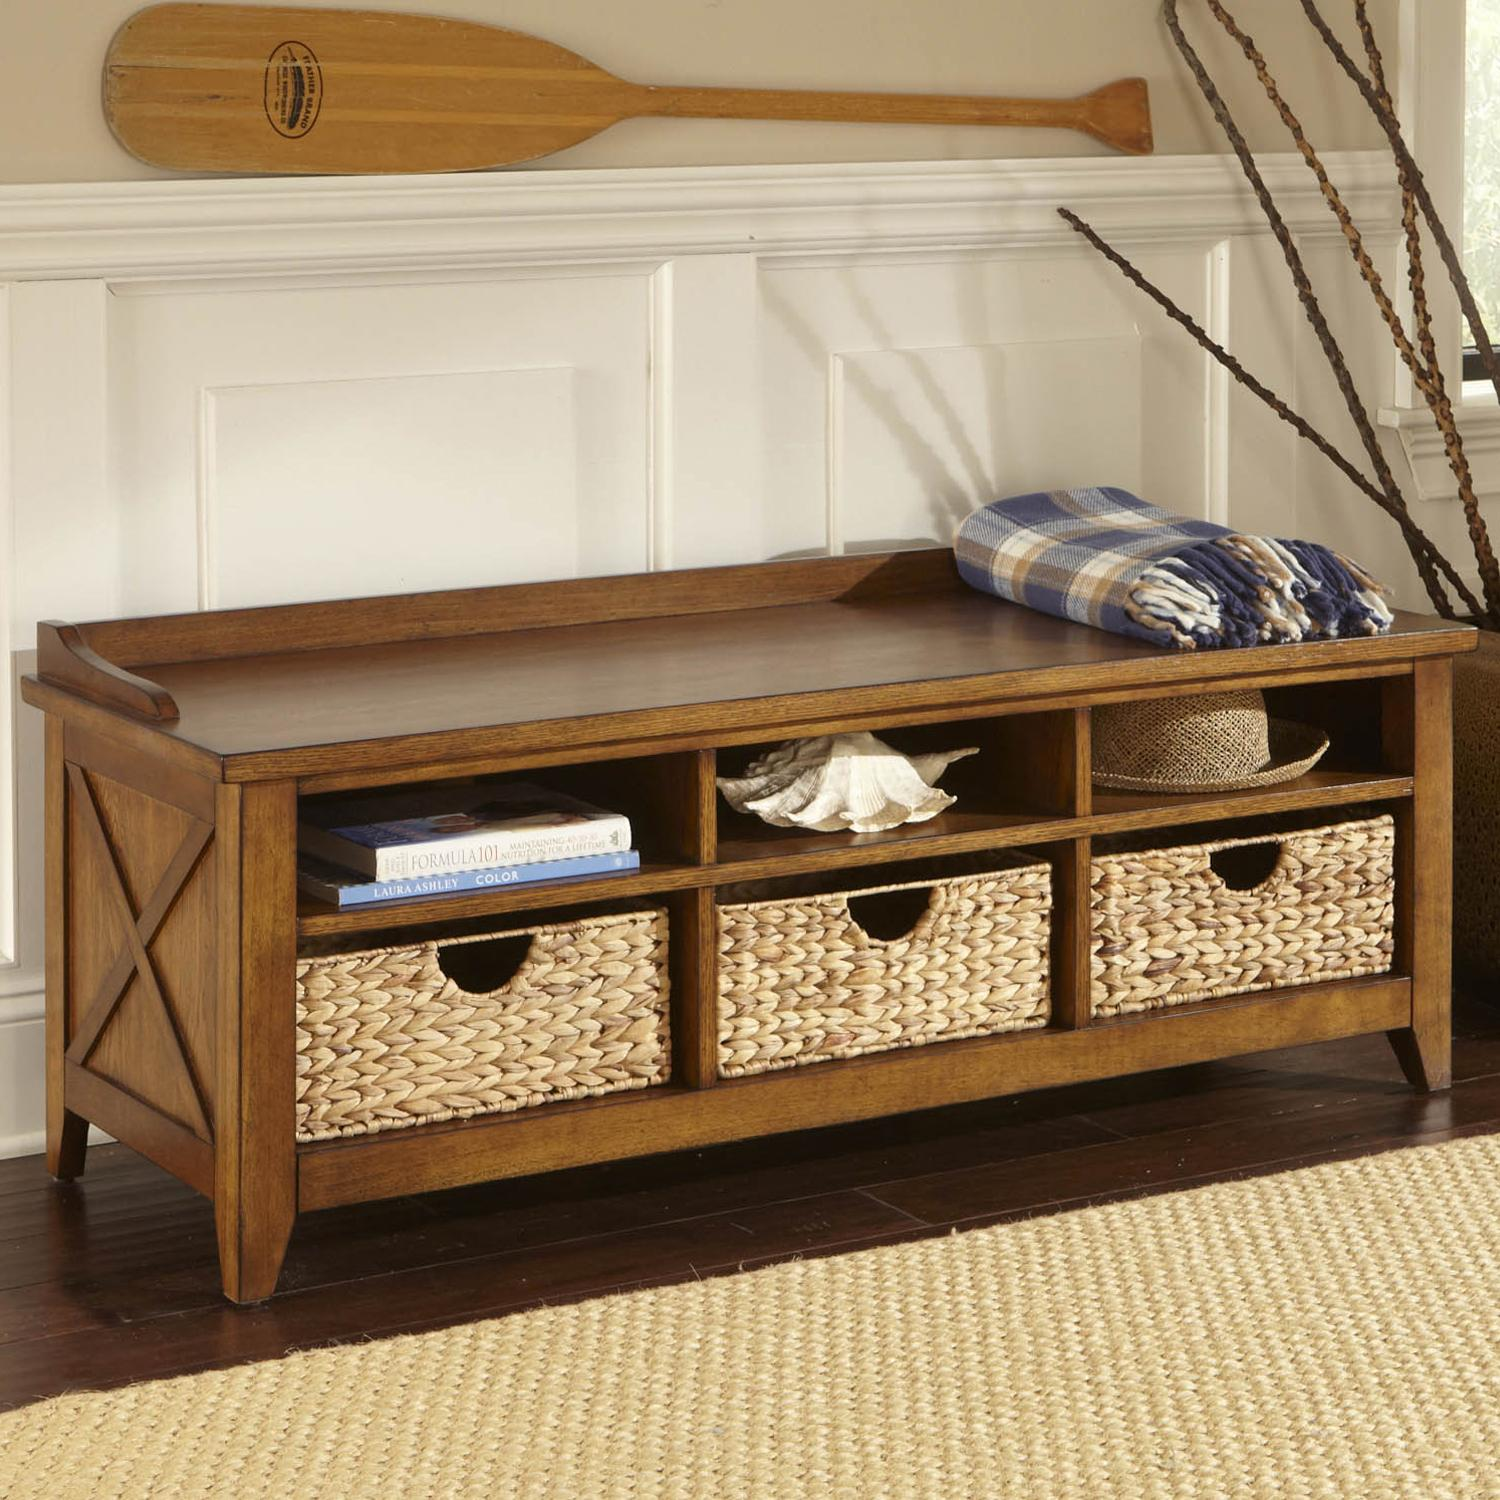 cubby storage entryway bench